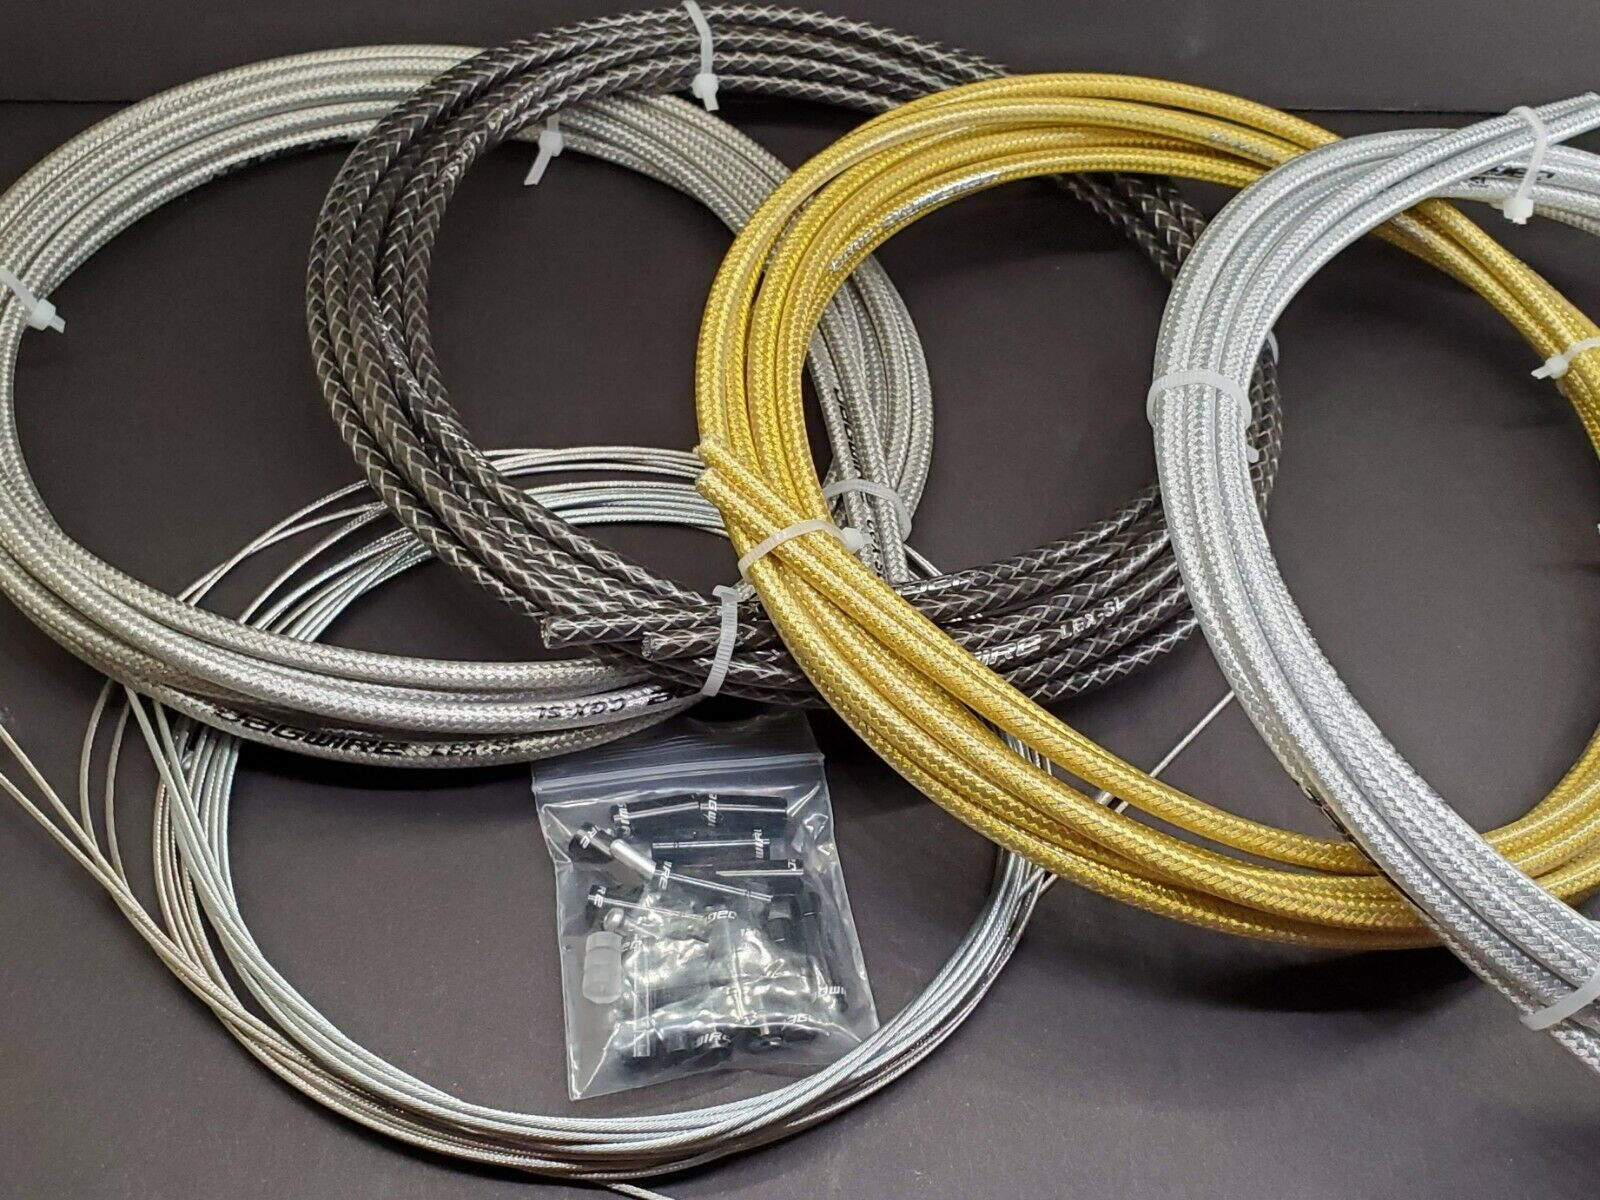 SLX MTB Shift Cable Kit With Stainless Steel Inner Cables Shimano XT